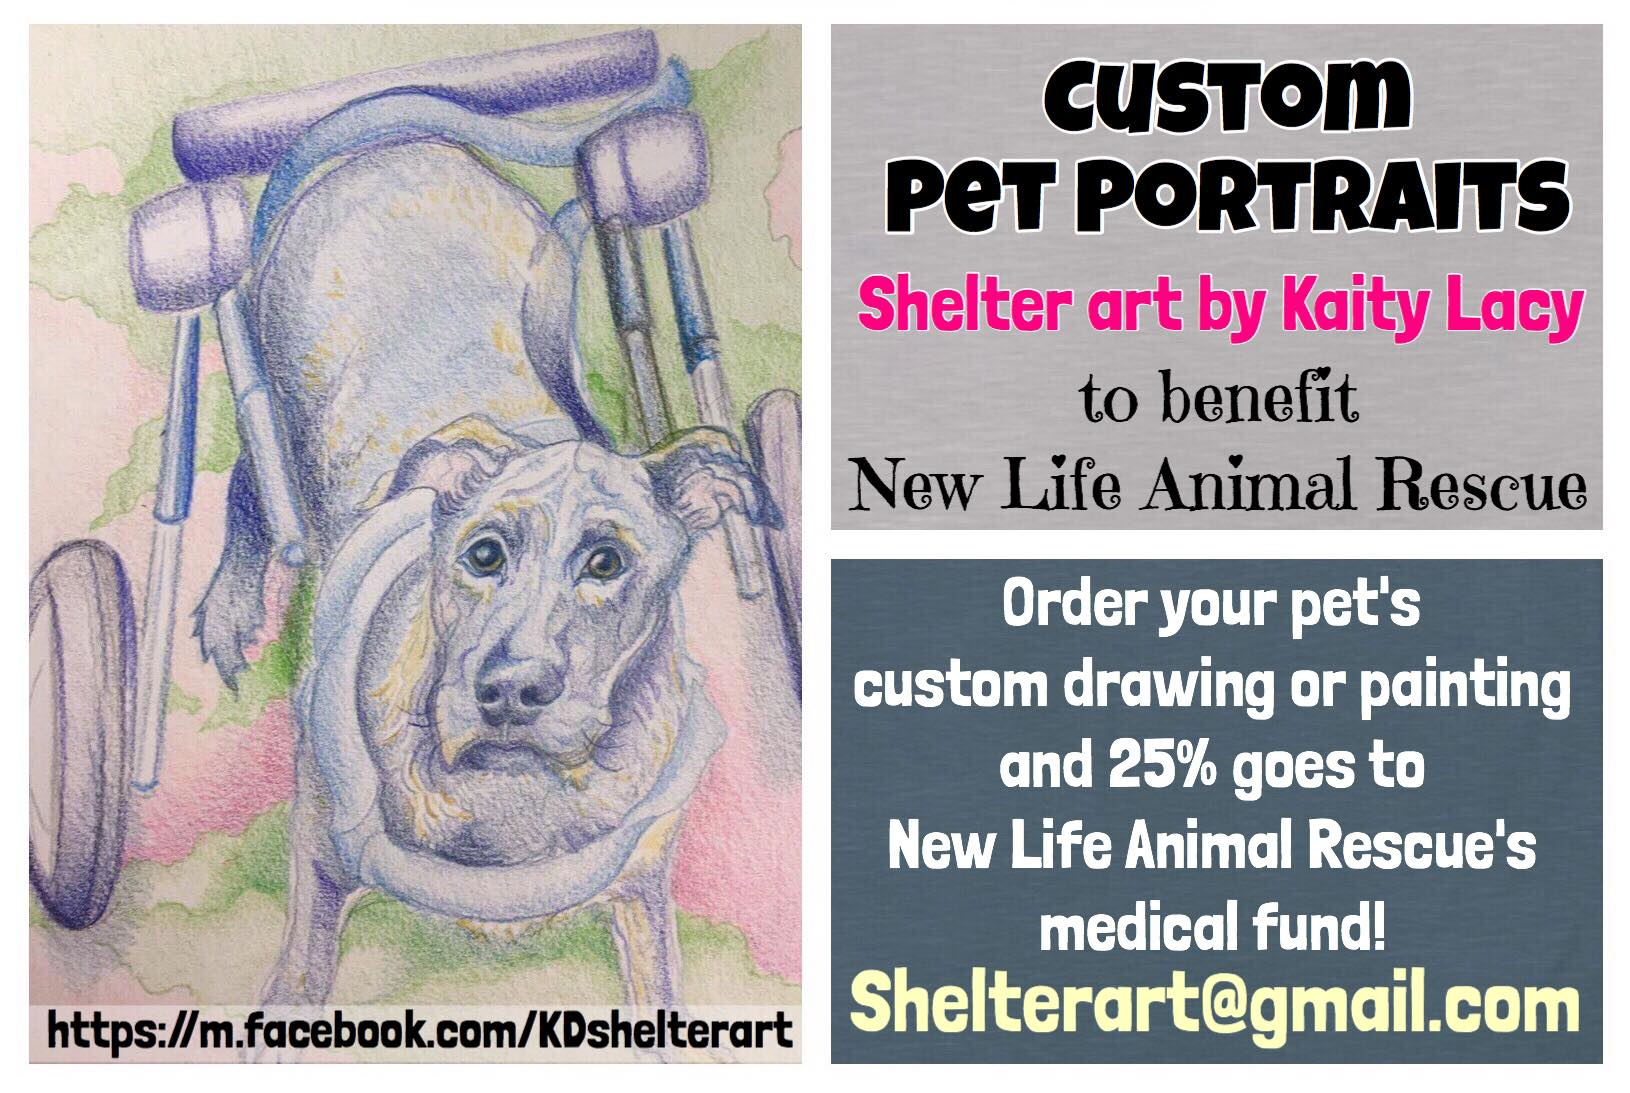 This amazing drawing of our sweet boy Francis was done by our friend Kaity of  Shelter Art by Kaity Lacy   And GUESS WHAT!!!!! Now YOU have an awesome opportunity to HELP US by ordering your own custom pet drawing or painting!!  Kaity has generously offered to donate 25% of her artwork ordered if you mention New Life Animal Rescue!!  You can see she does great work - now you can have a beautiful piece of art featuring your fur baby AND benefit the New Life Animal Rescue rescued dogs & cats! Contact her at Shelterart@gmail.com And visit her FB page at  https://m.facebook.com/KDshelterart  THANK YOU KAITY! 💕